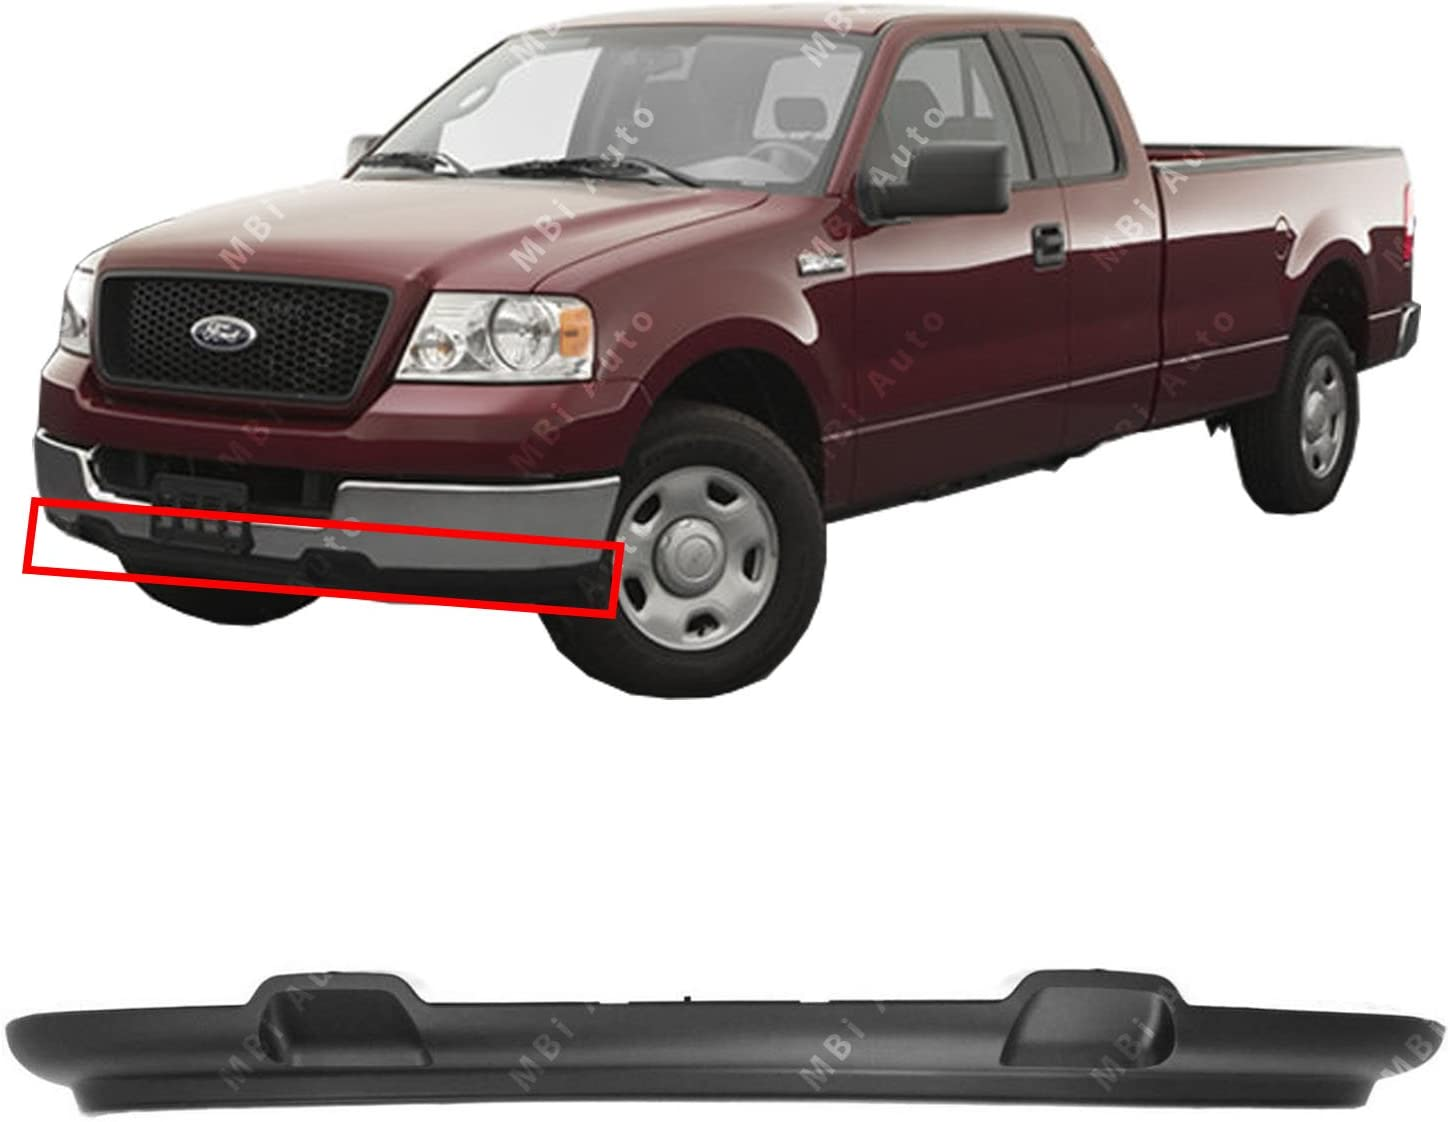 Amazon Com Mbi Auto Textured Black Front Lower Valance Air Deflector For 2004 2005 Ford F150 Pickup 04 05 Fo1095205 Automotive